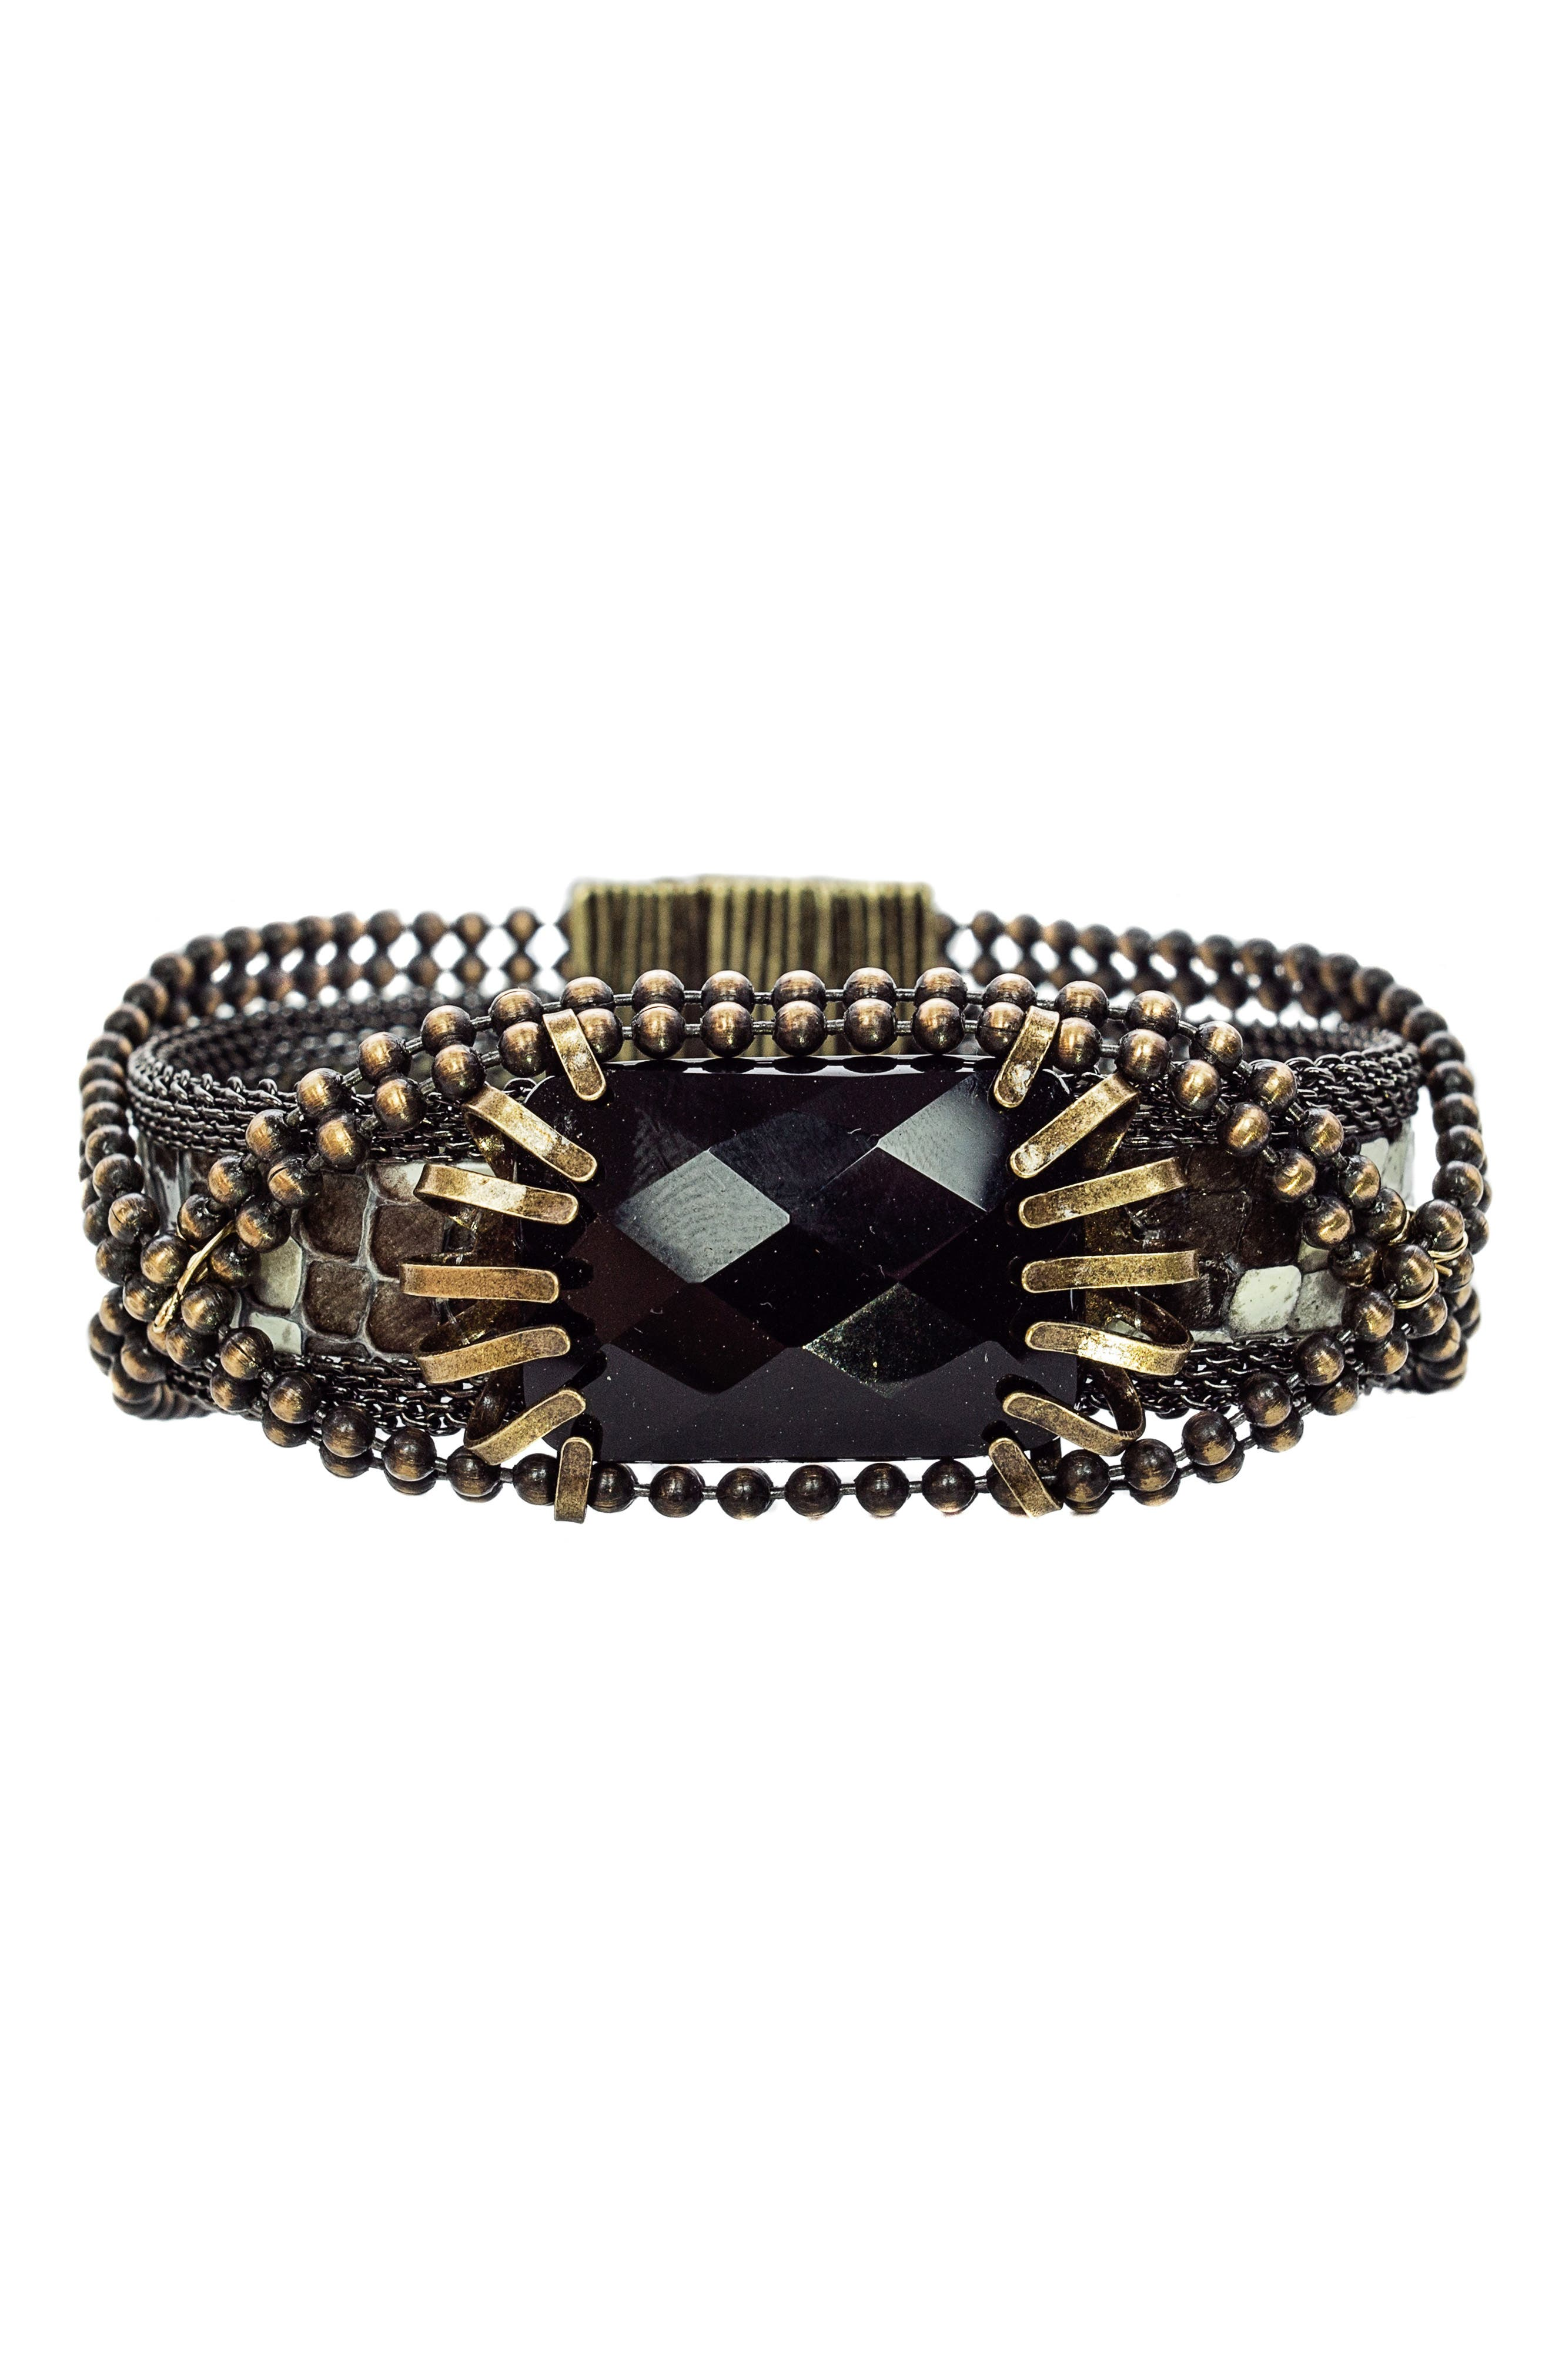 Stone & Snakeskin Bracelet,                         Main,                         color, Black/ Bronze